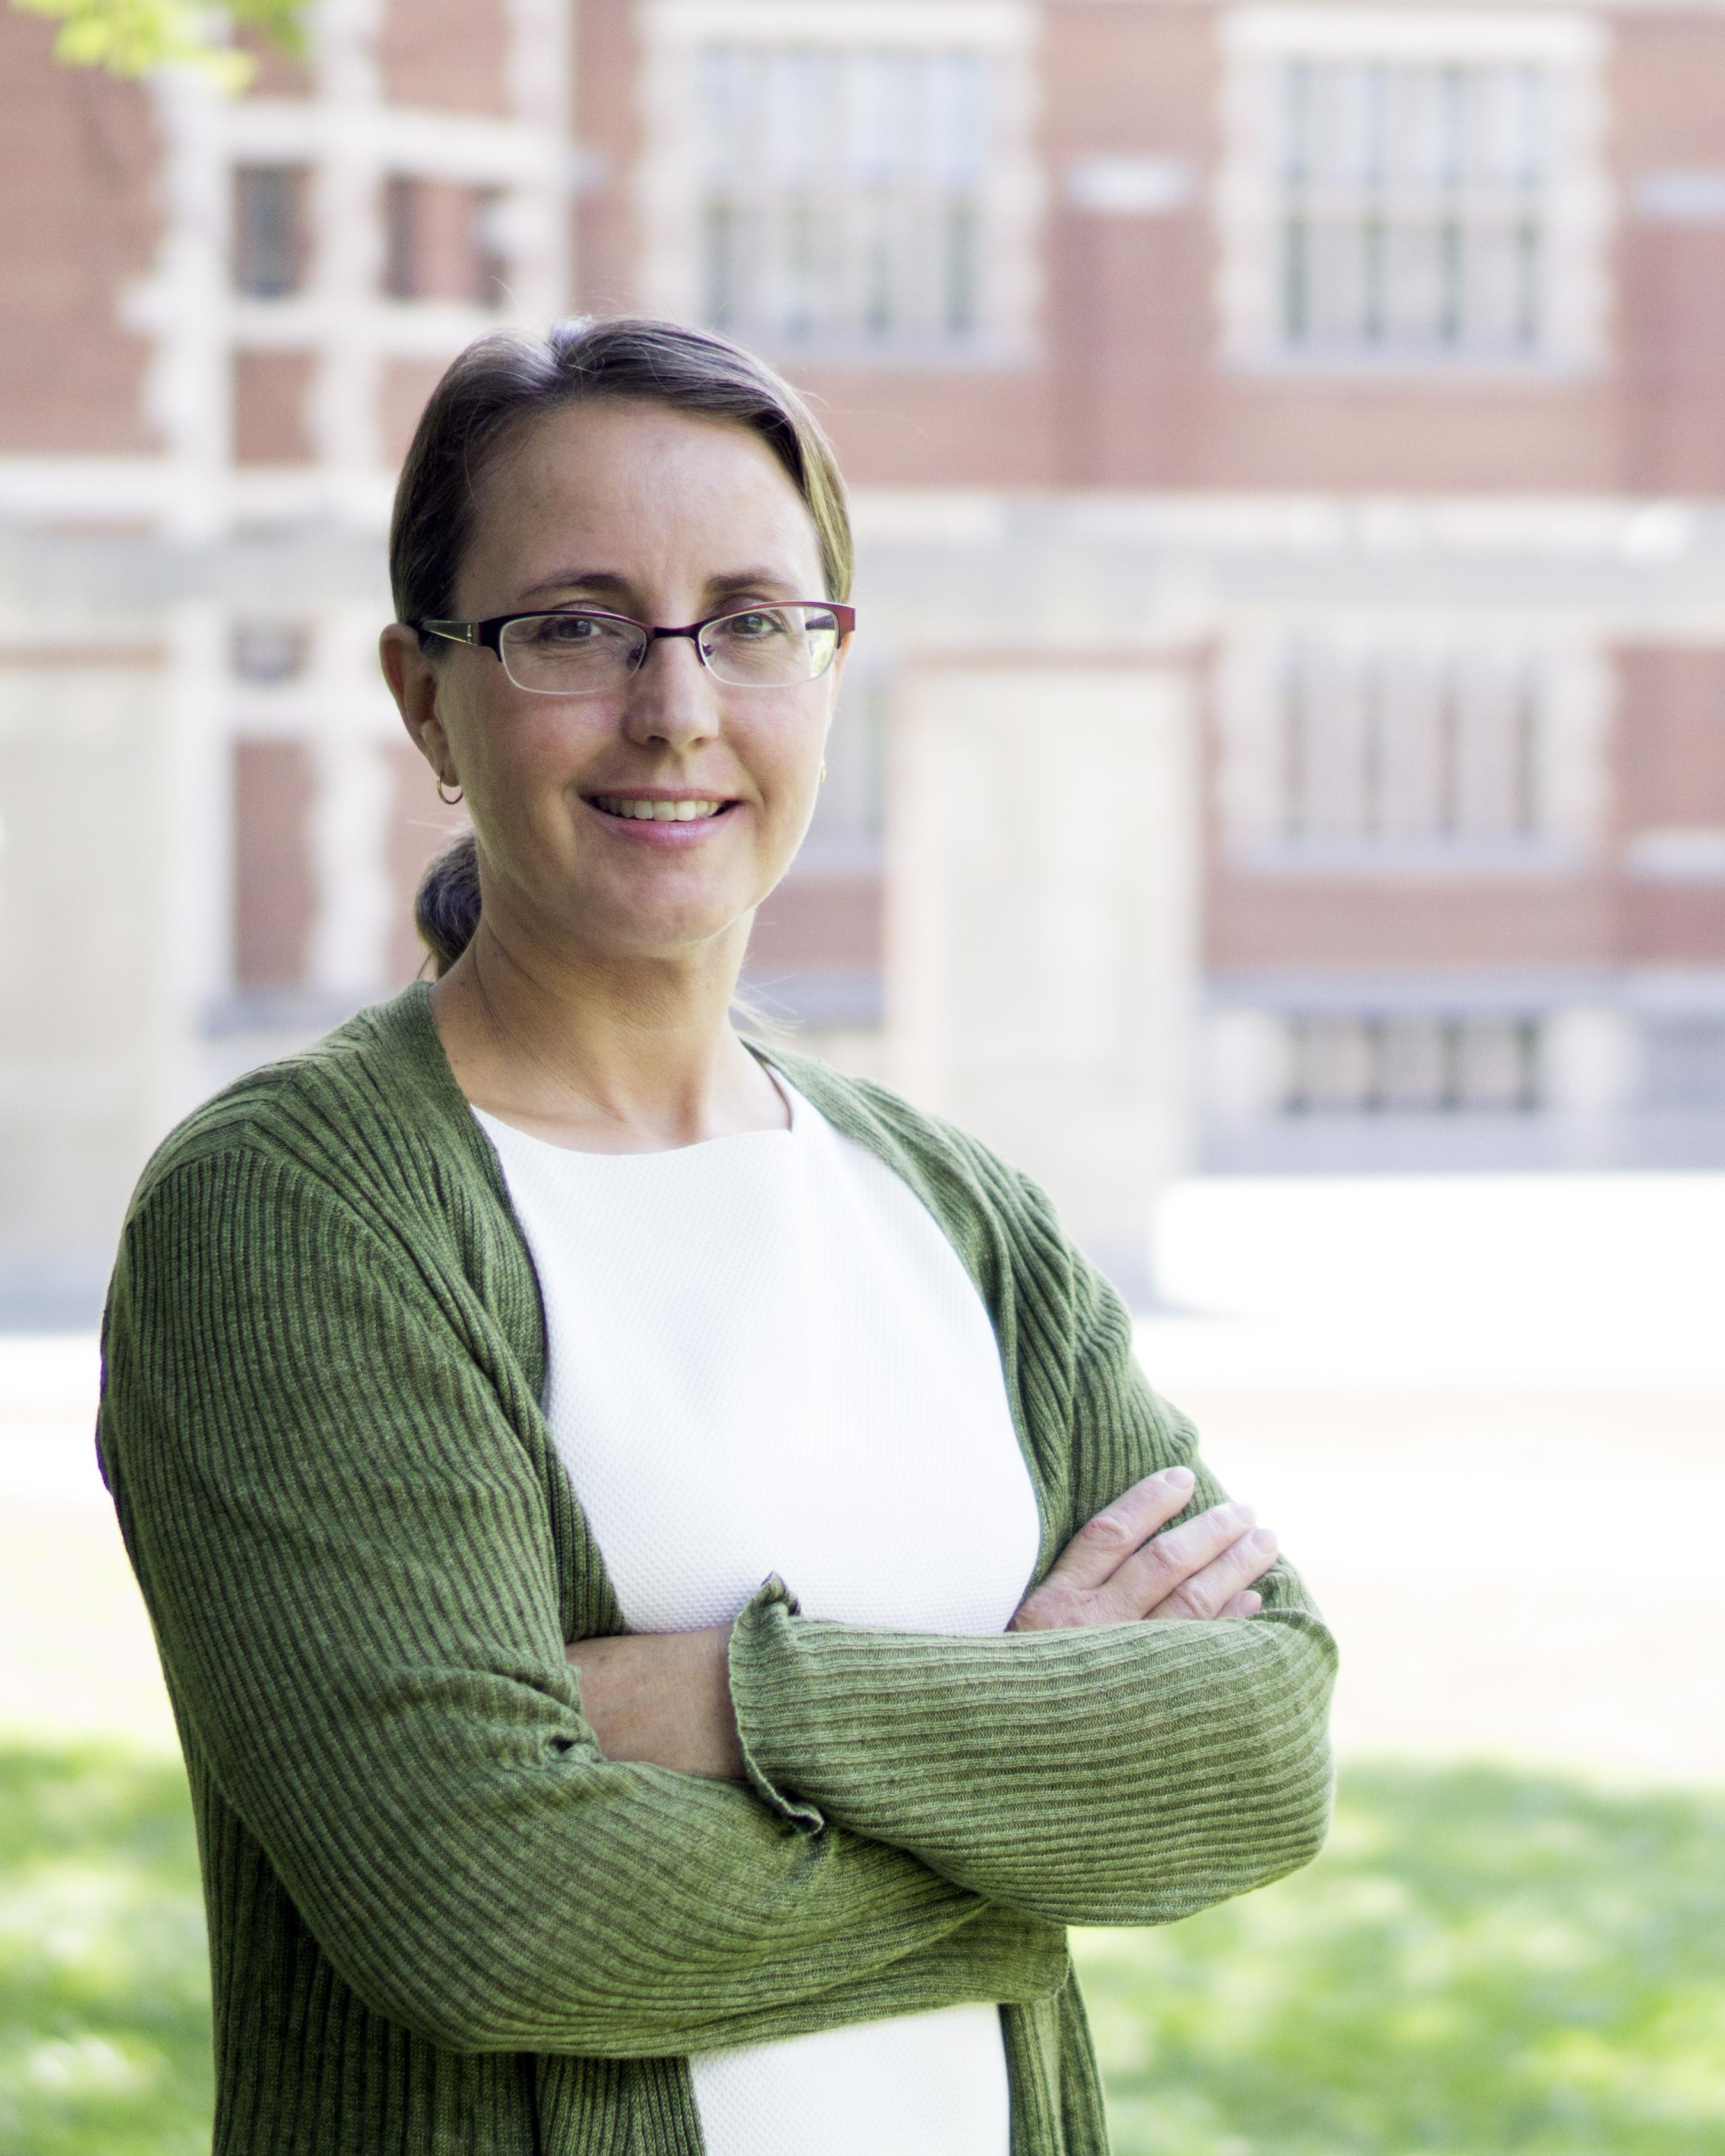 Rebecca Graves-Bayazitoglu, Director of the McGraw Center and Associate Director of the College